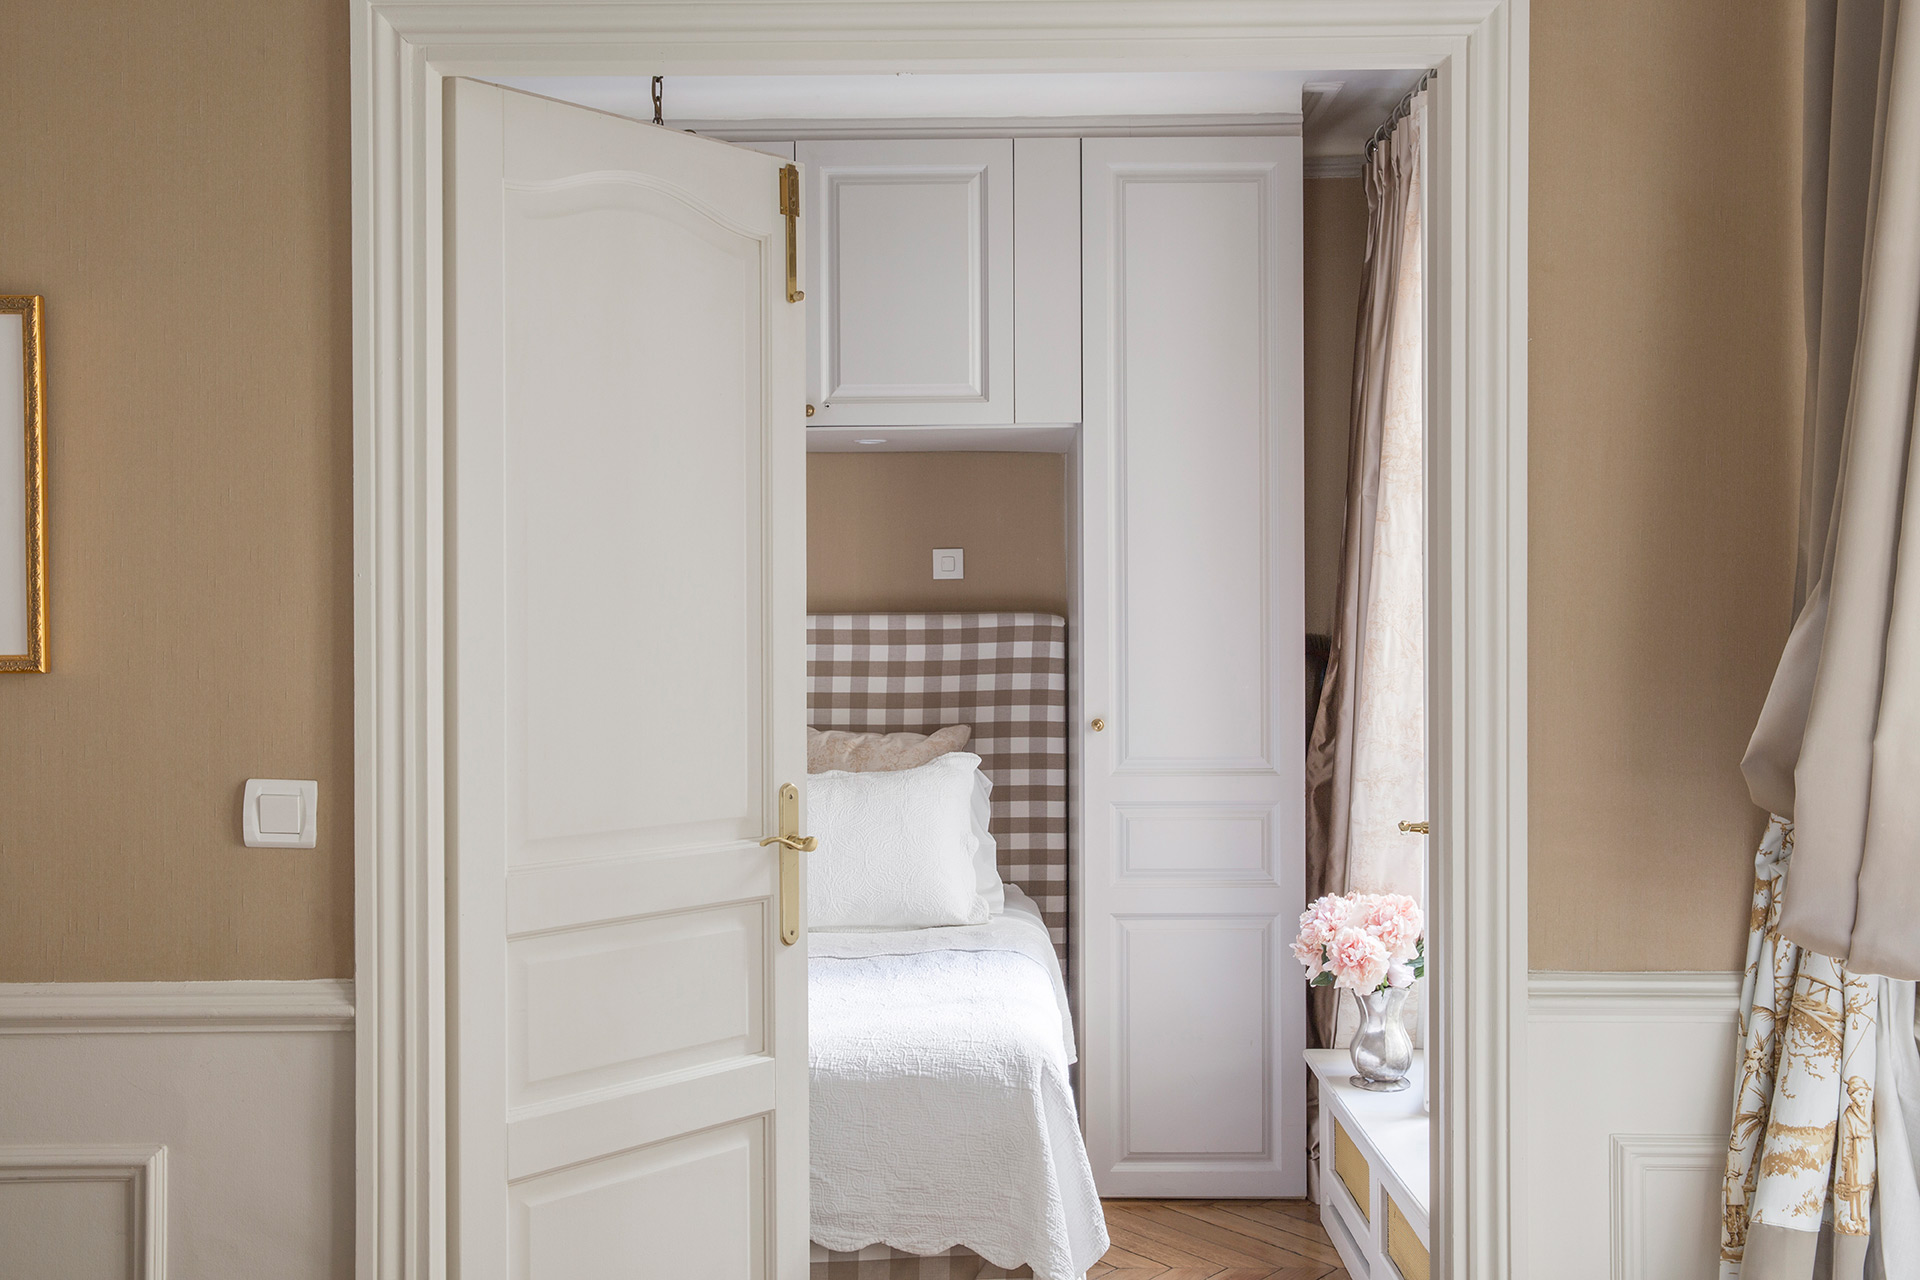 Family Vacation Rental Bedroom in Paris